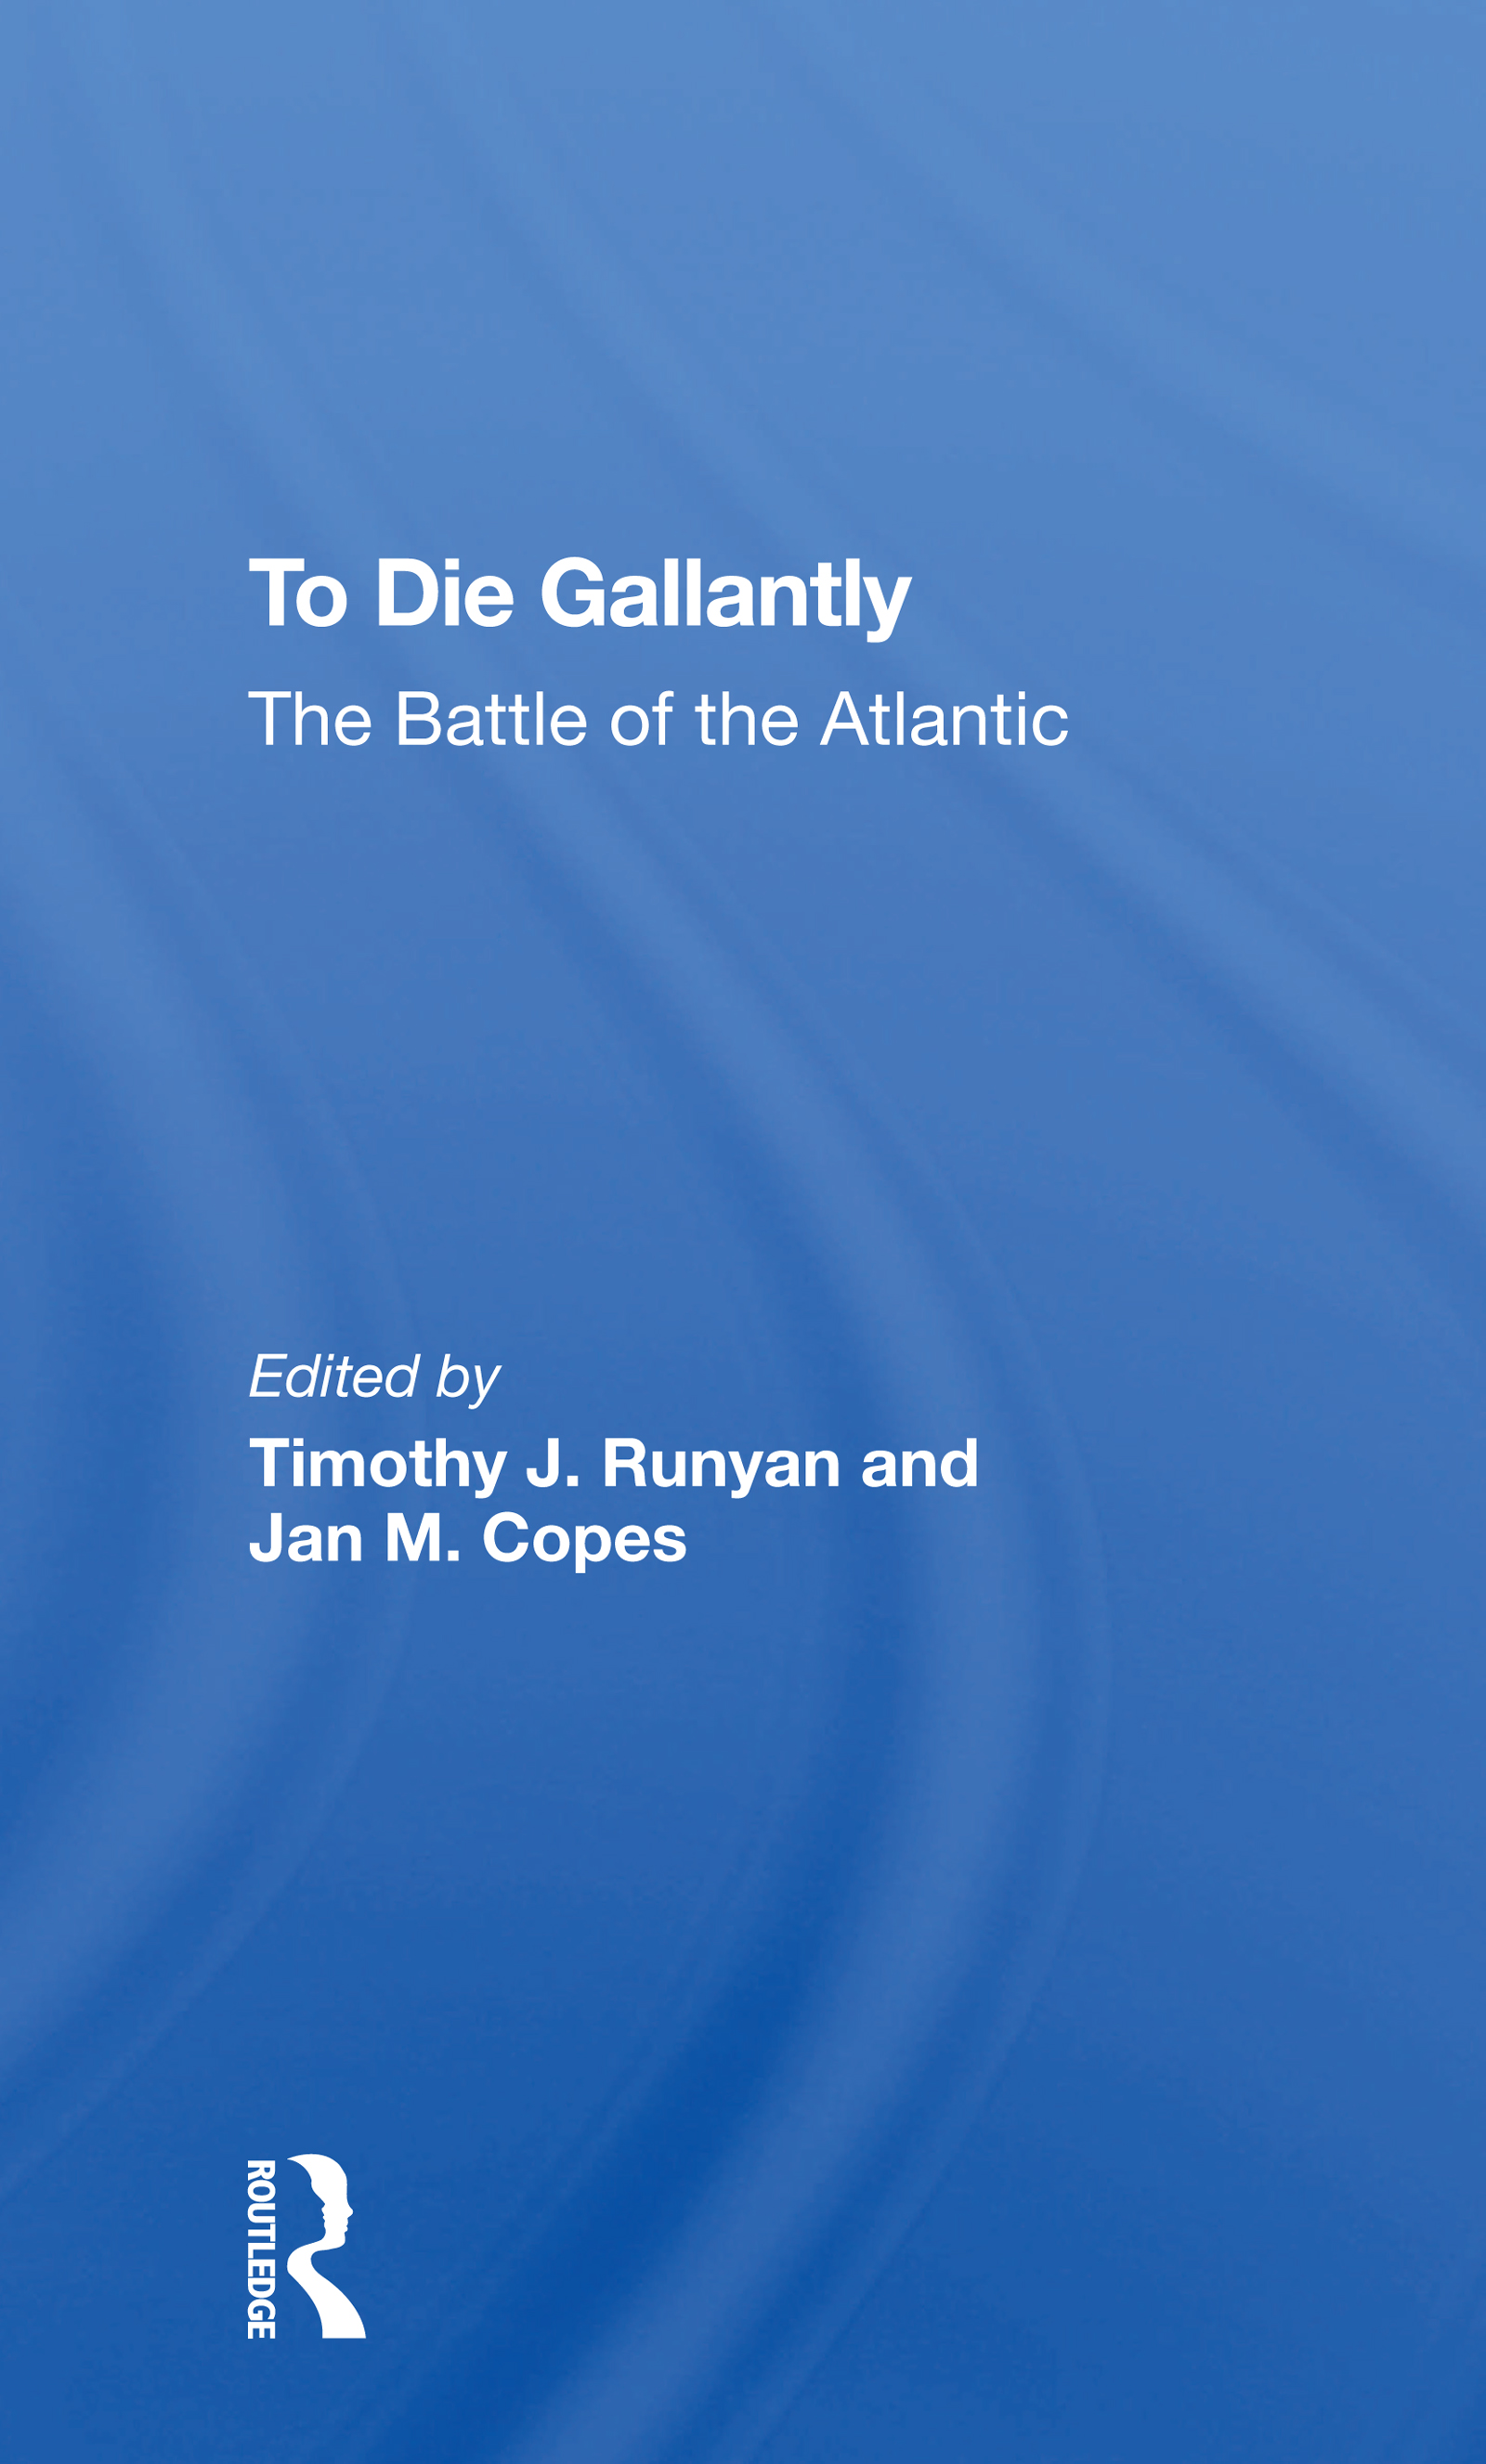 To Die Gallantly